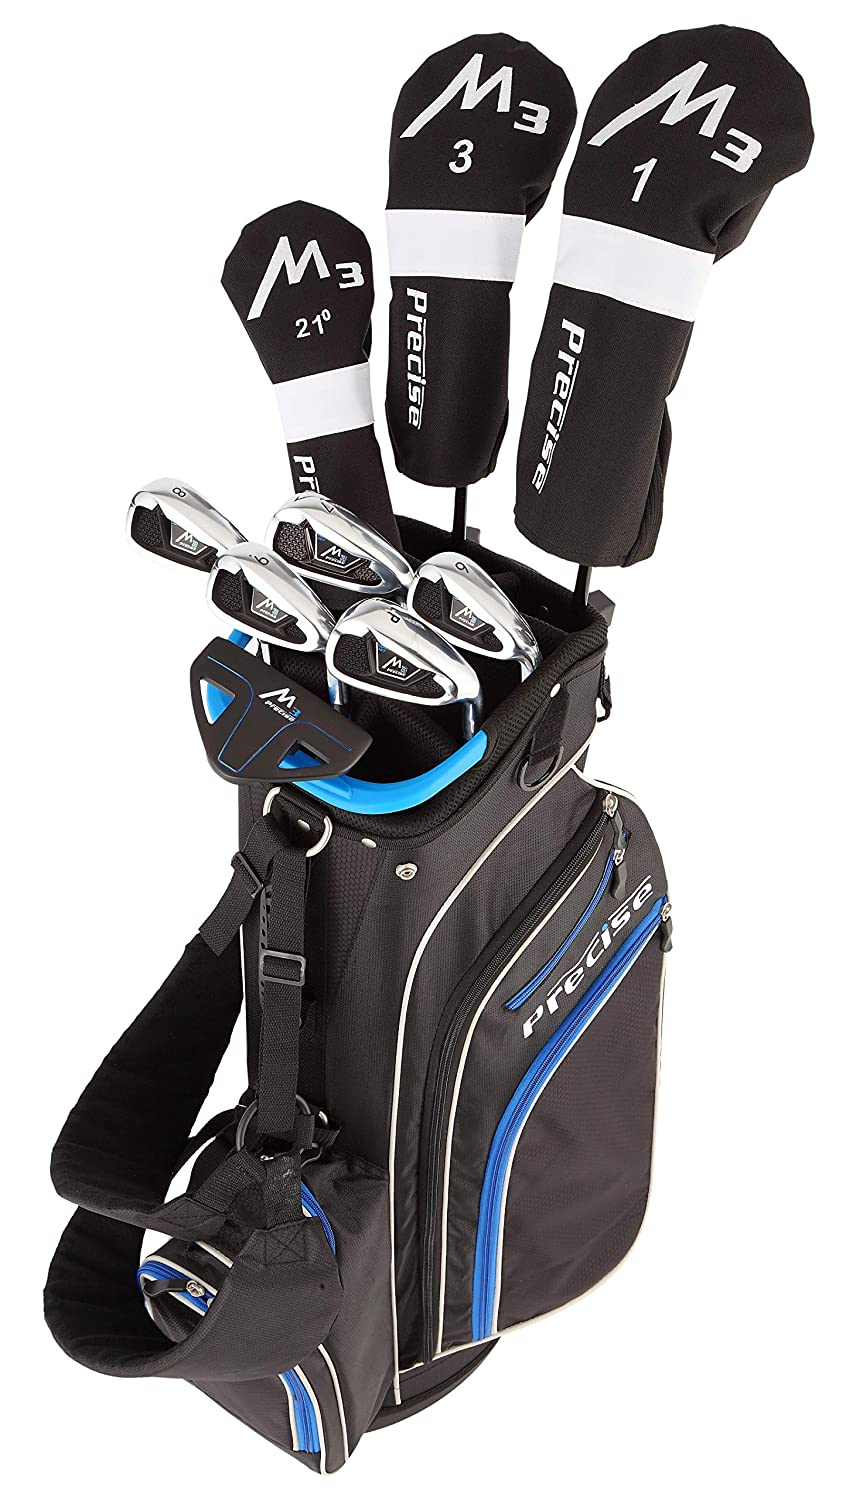 Precise M3 Mens Complete Golf Clubs Package Set Includes Driver, Fairway, Hybrid, 6-PW, Putter, Stand Bag, 3 H/Cs - Right Handed - Regular or Tall ...